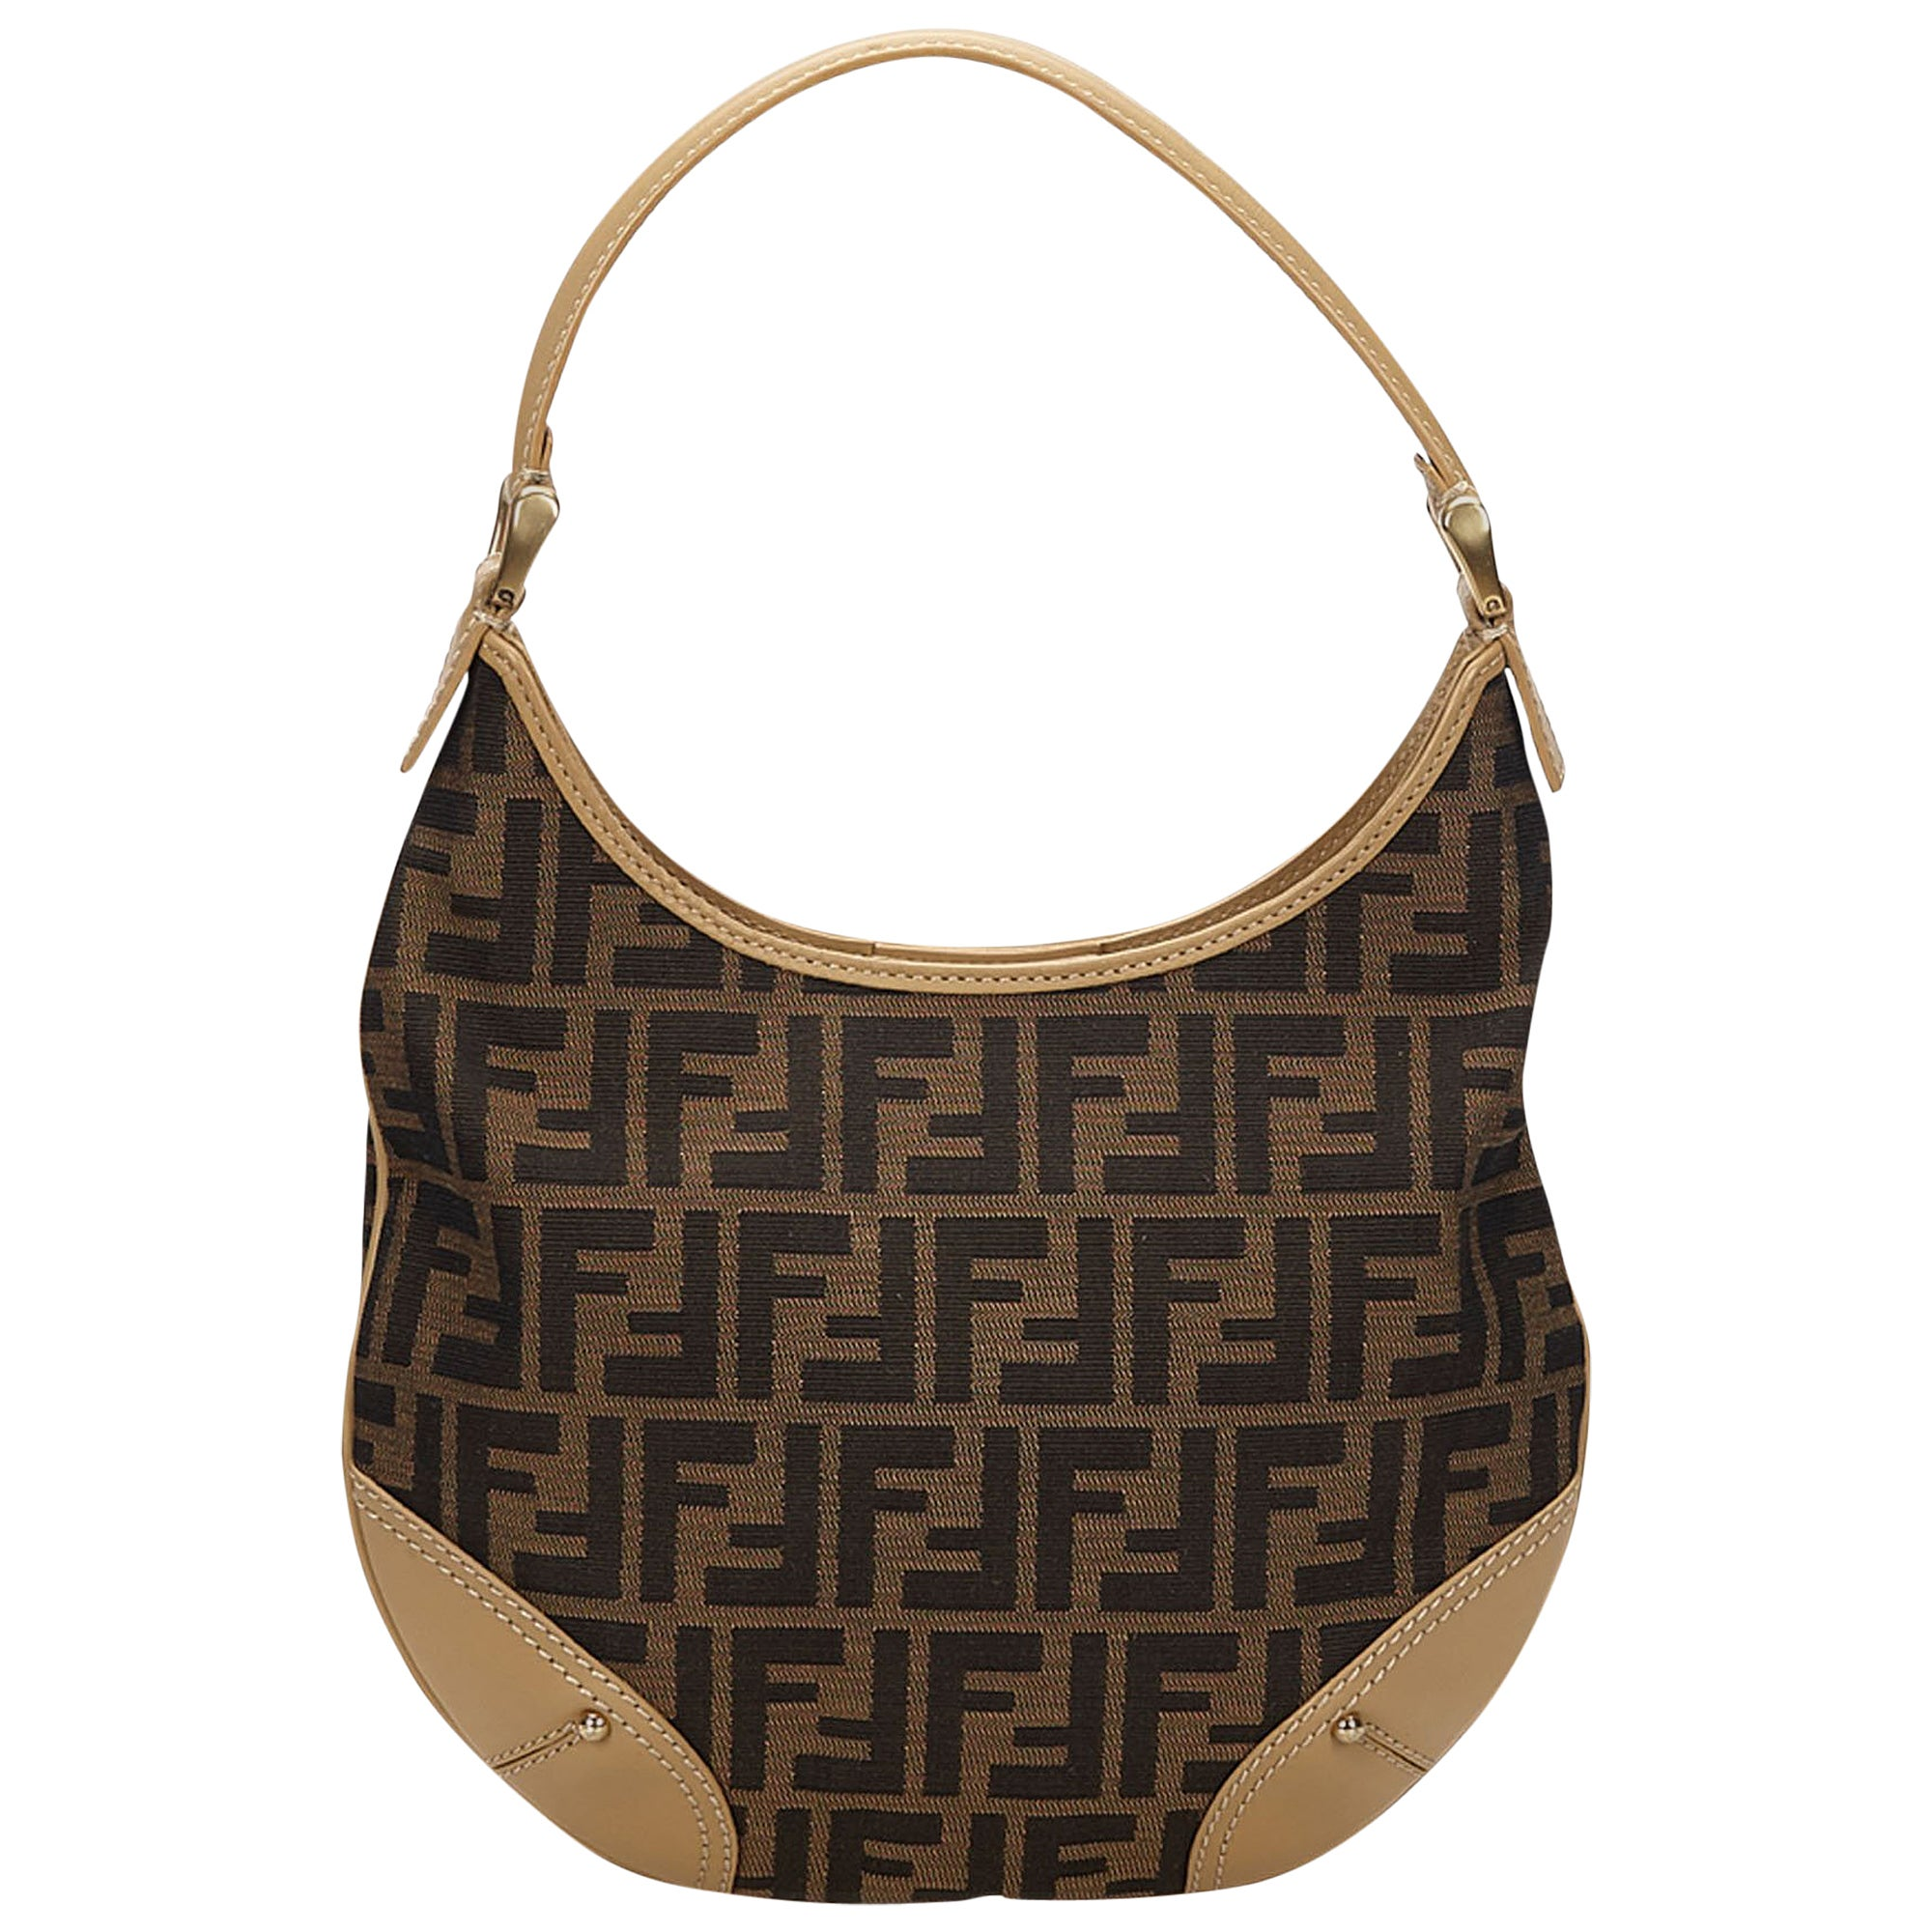 b85e695c5d37 Fendi Brown Zucca Jacquard Hobo Bag For Sale at 1stdibs